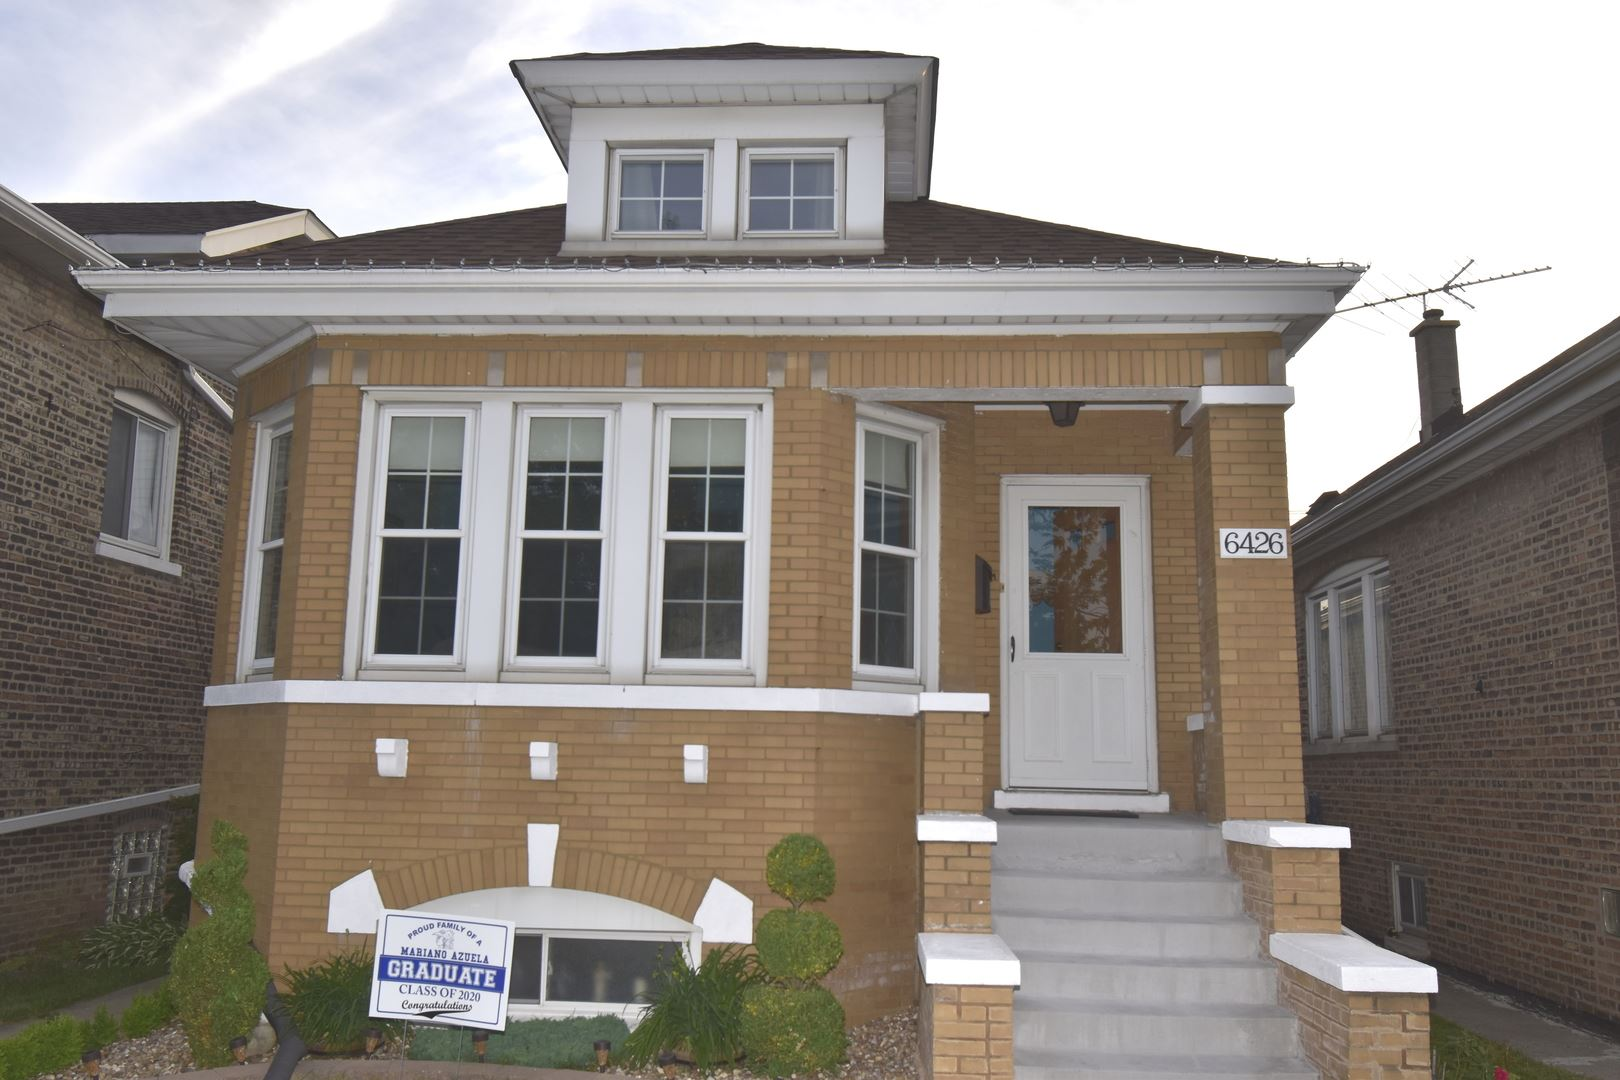 6426 S KEATING Avenue, Chicago, IL 60629 - #: 10767237